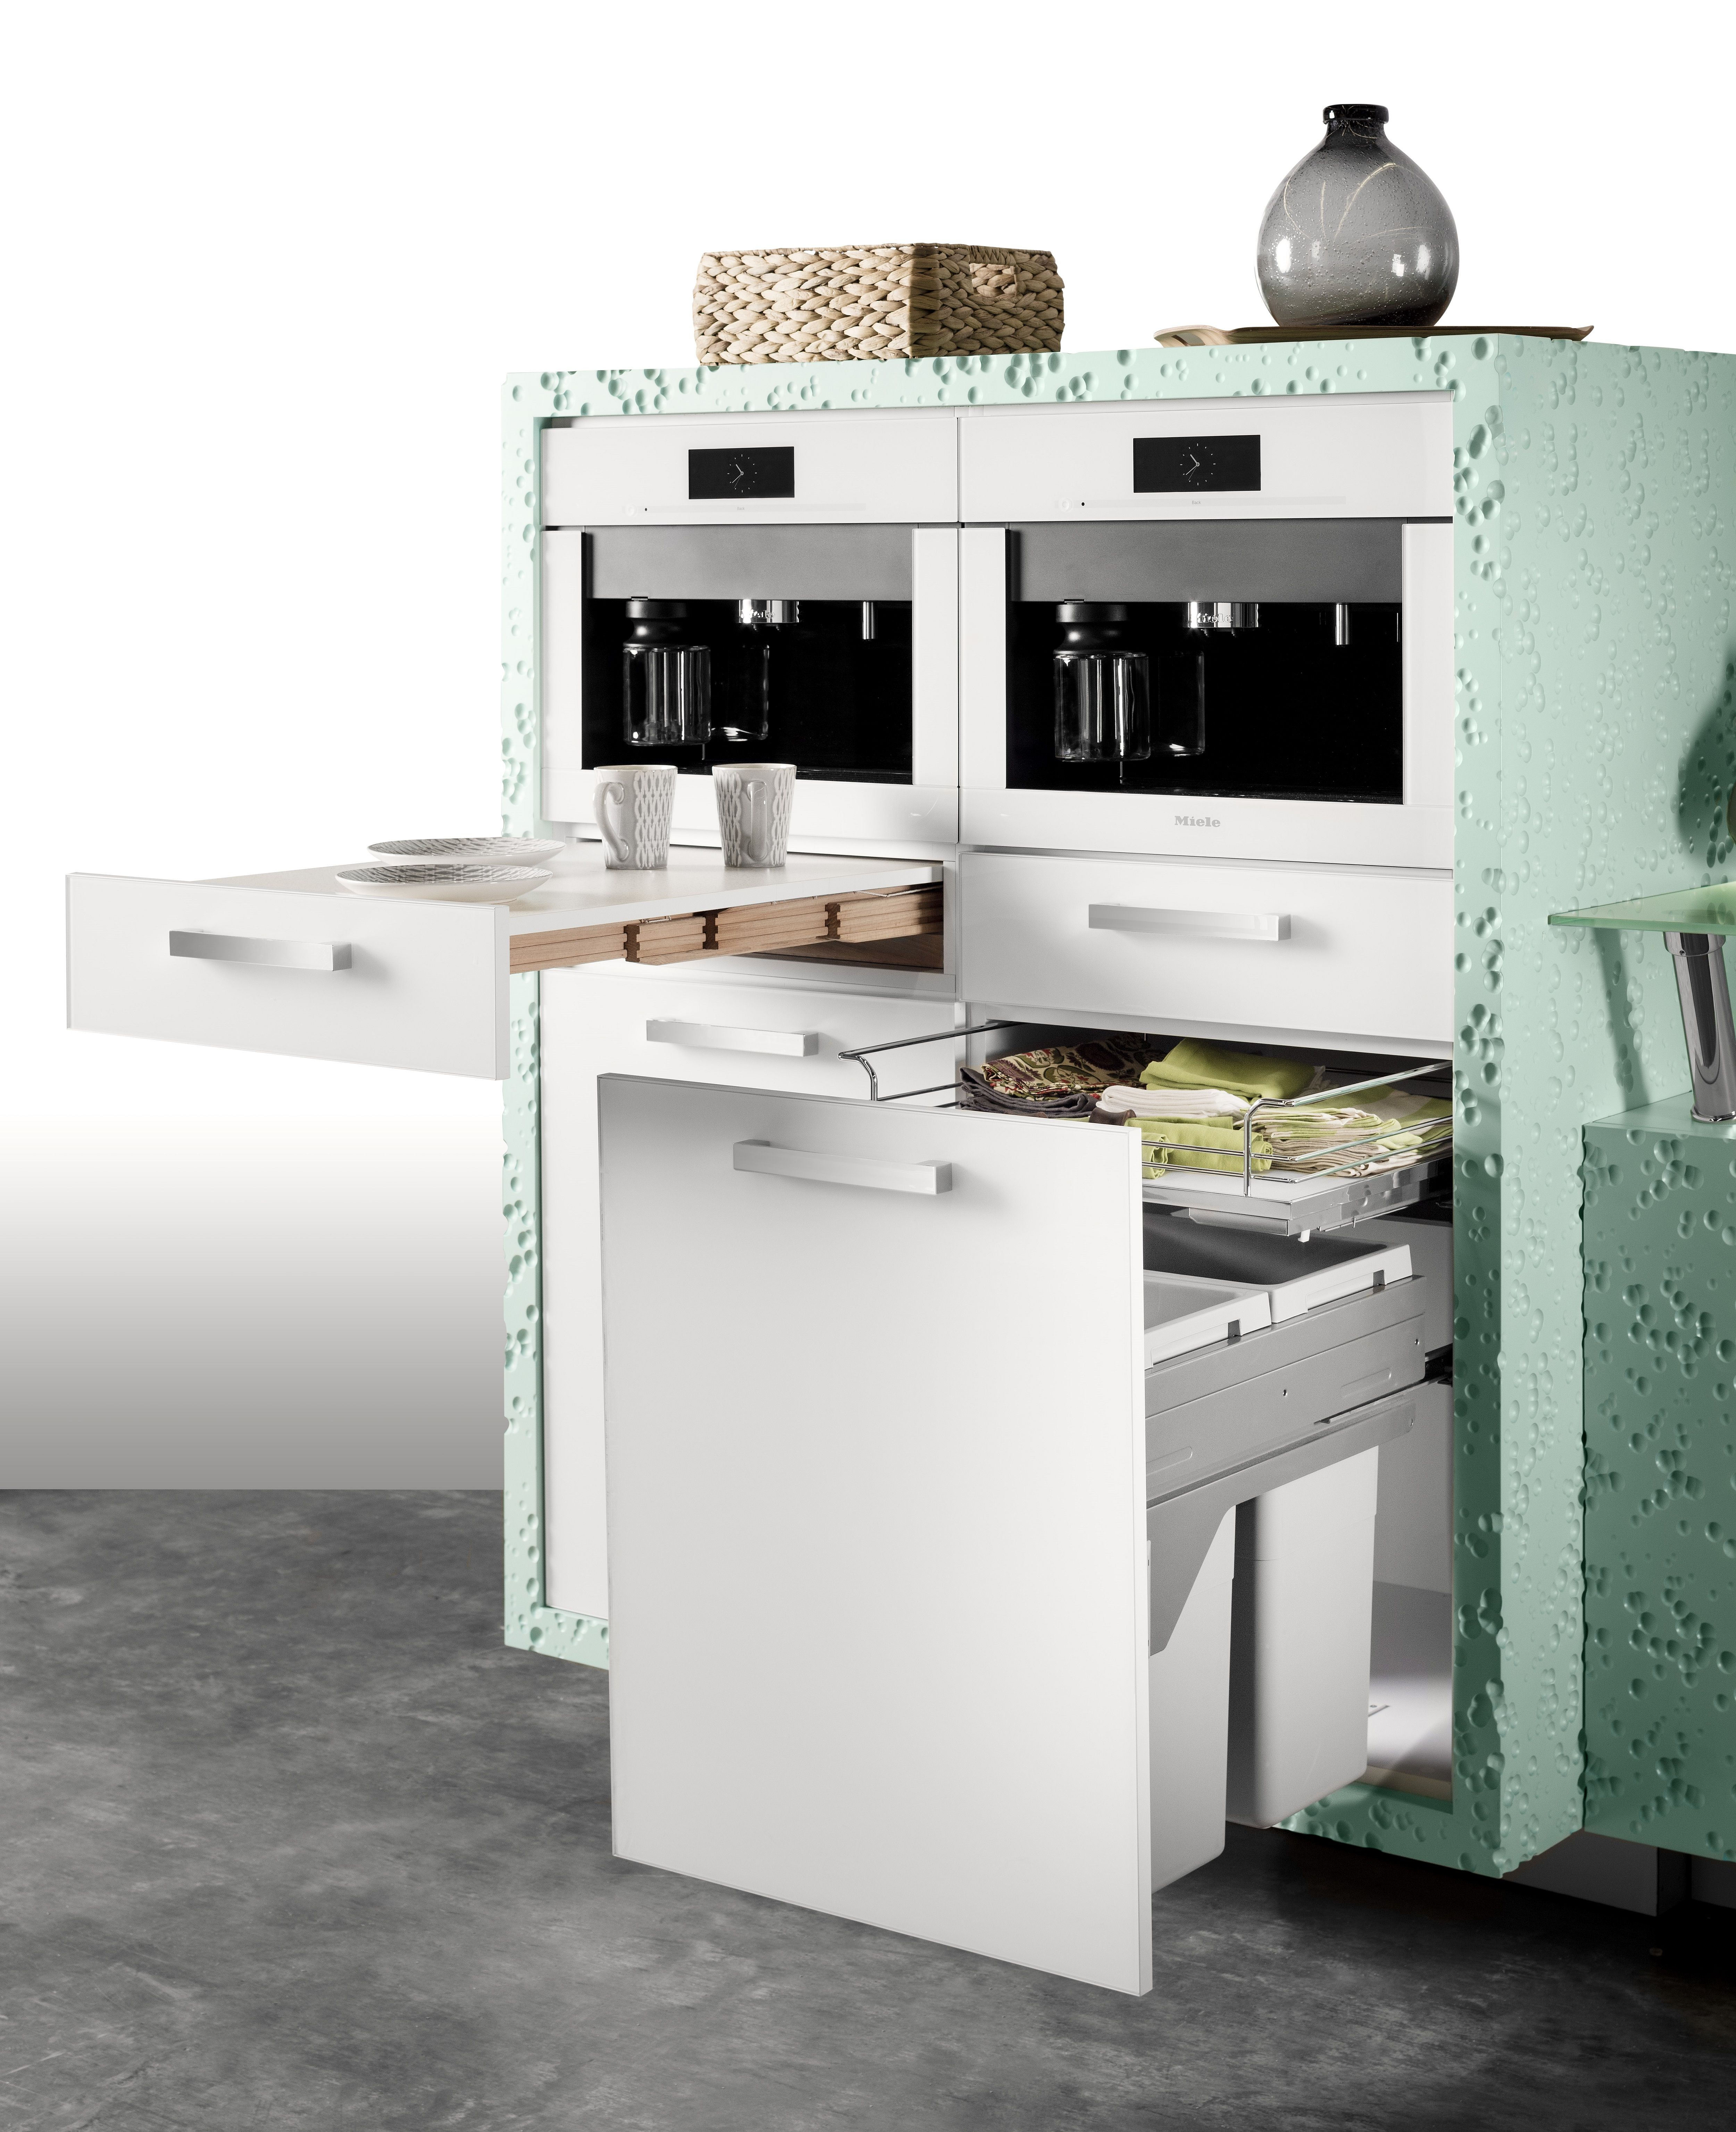 Hafele Pullout Table System  Cocina  Pinterest  Kitchen Design Simple Mini Kitchen Designs Inspiration